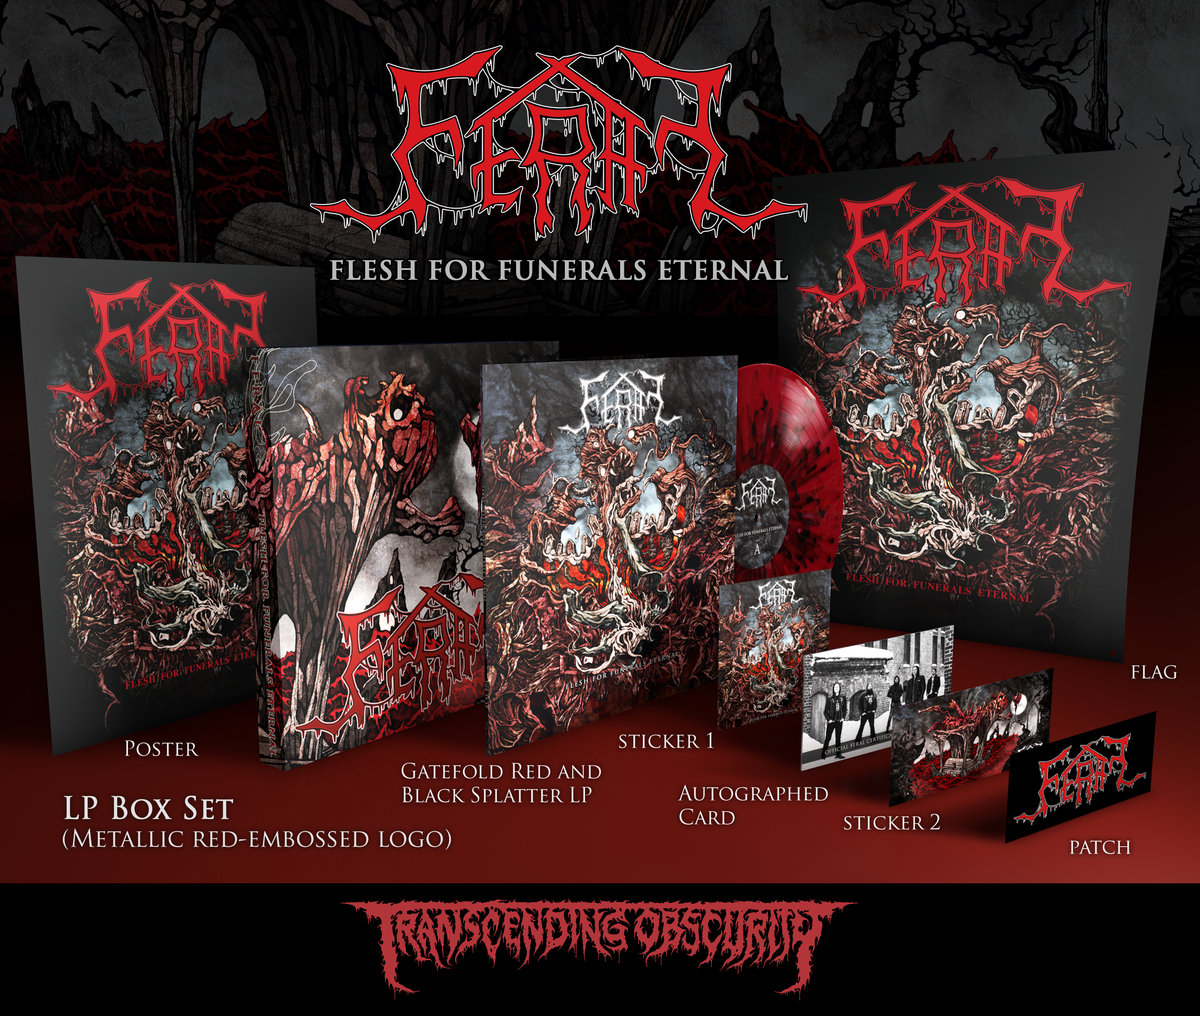 FERAL (Sweden) - Autographed LP Box Sets with Alternate Artwork (Ltd. to 50)